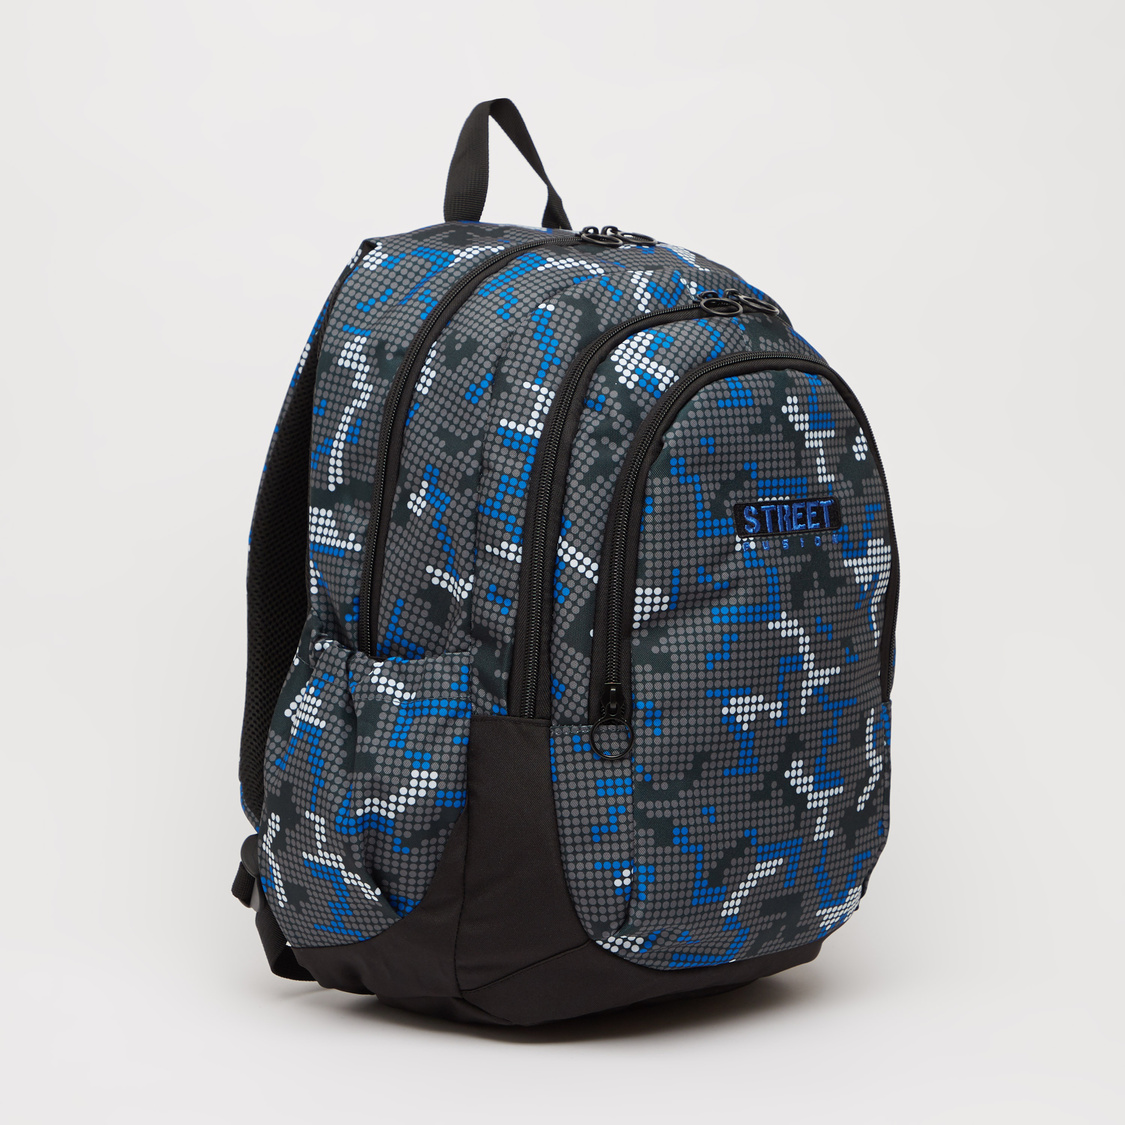 Printed Backpack with Adjustable Straps and Zip Closure - 17 Inches